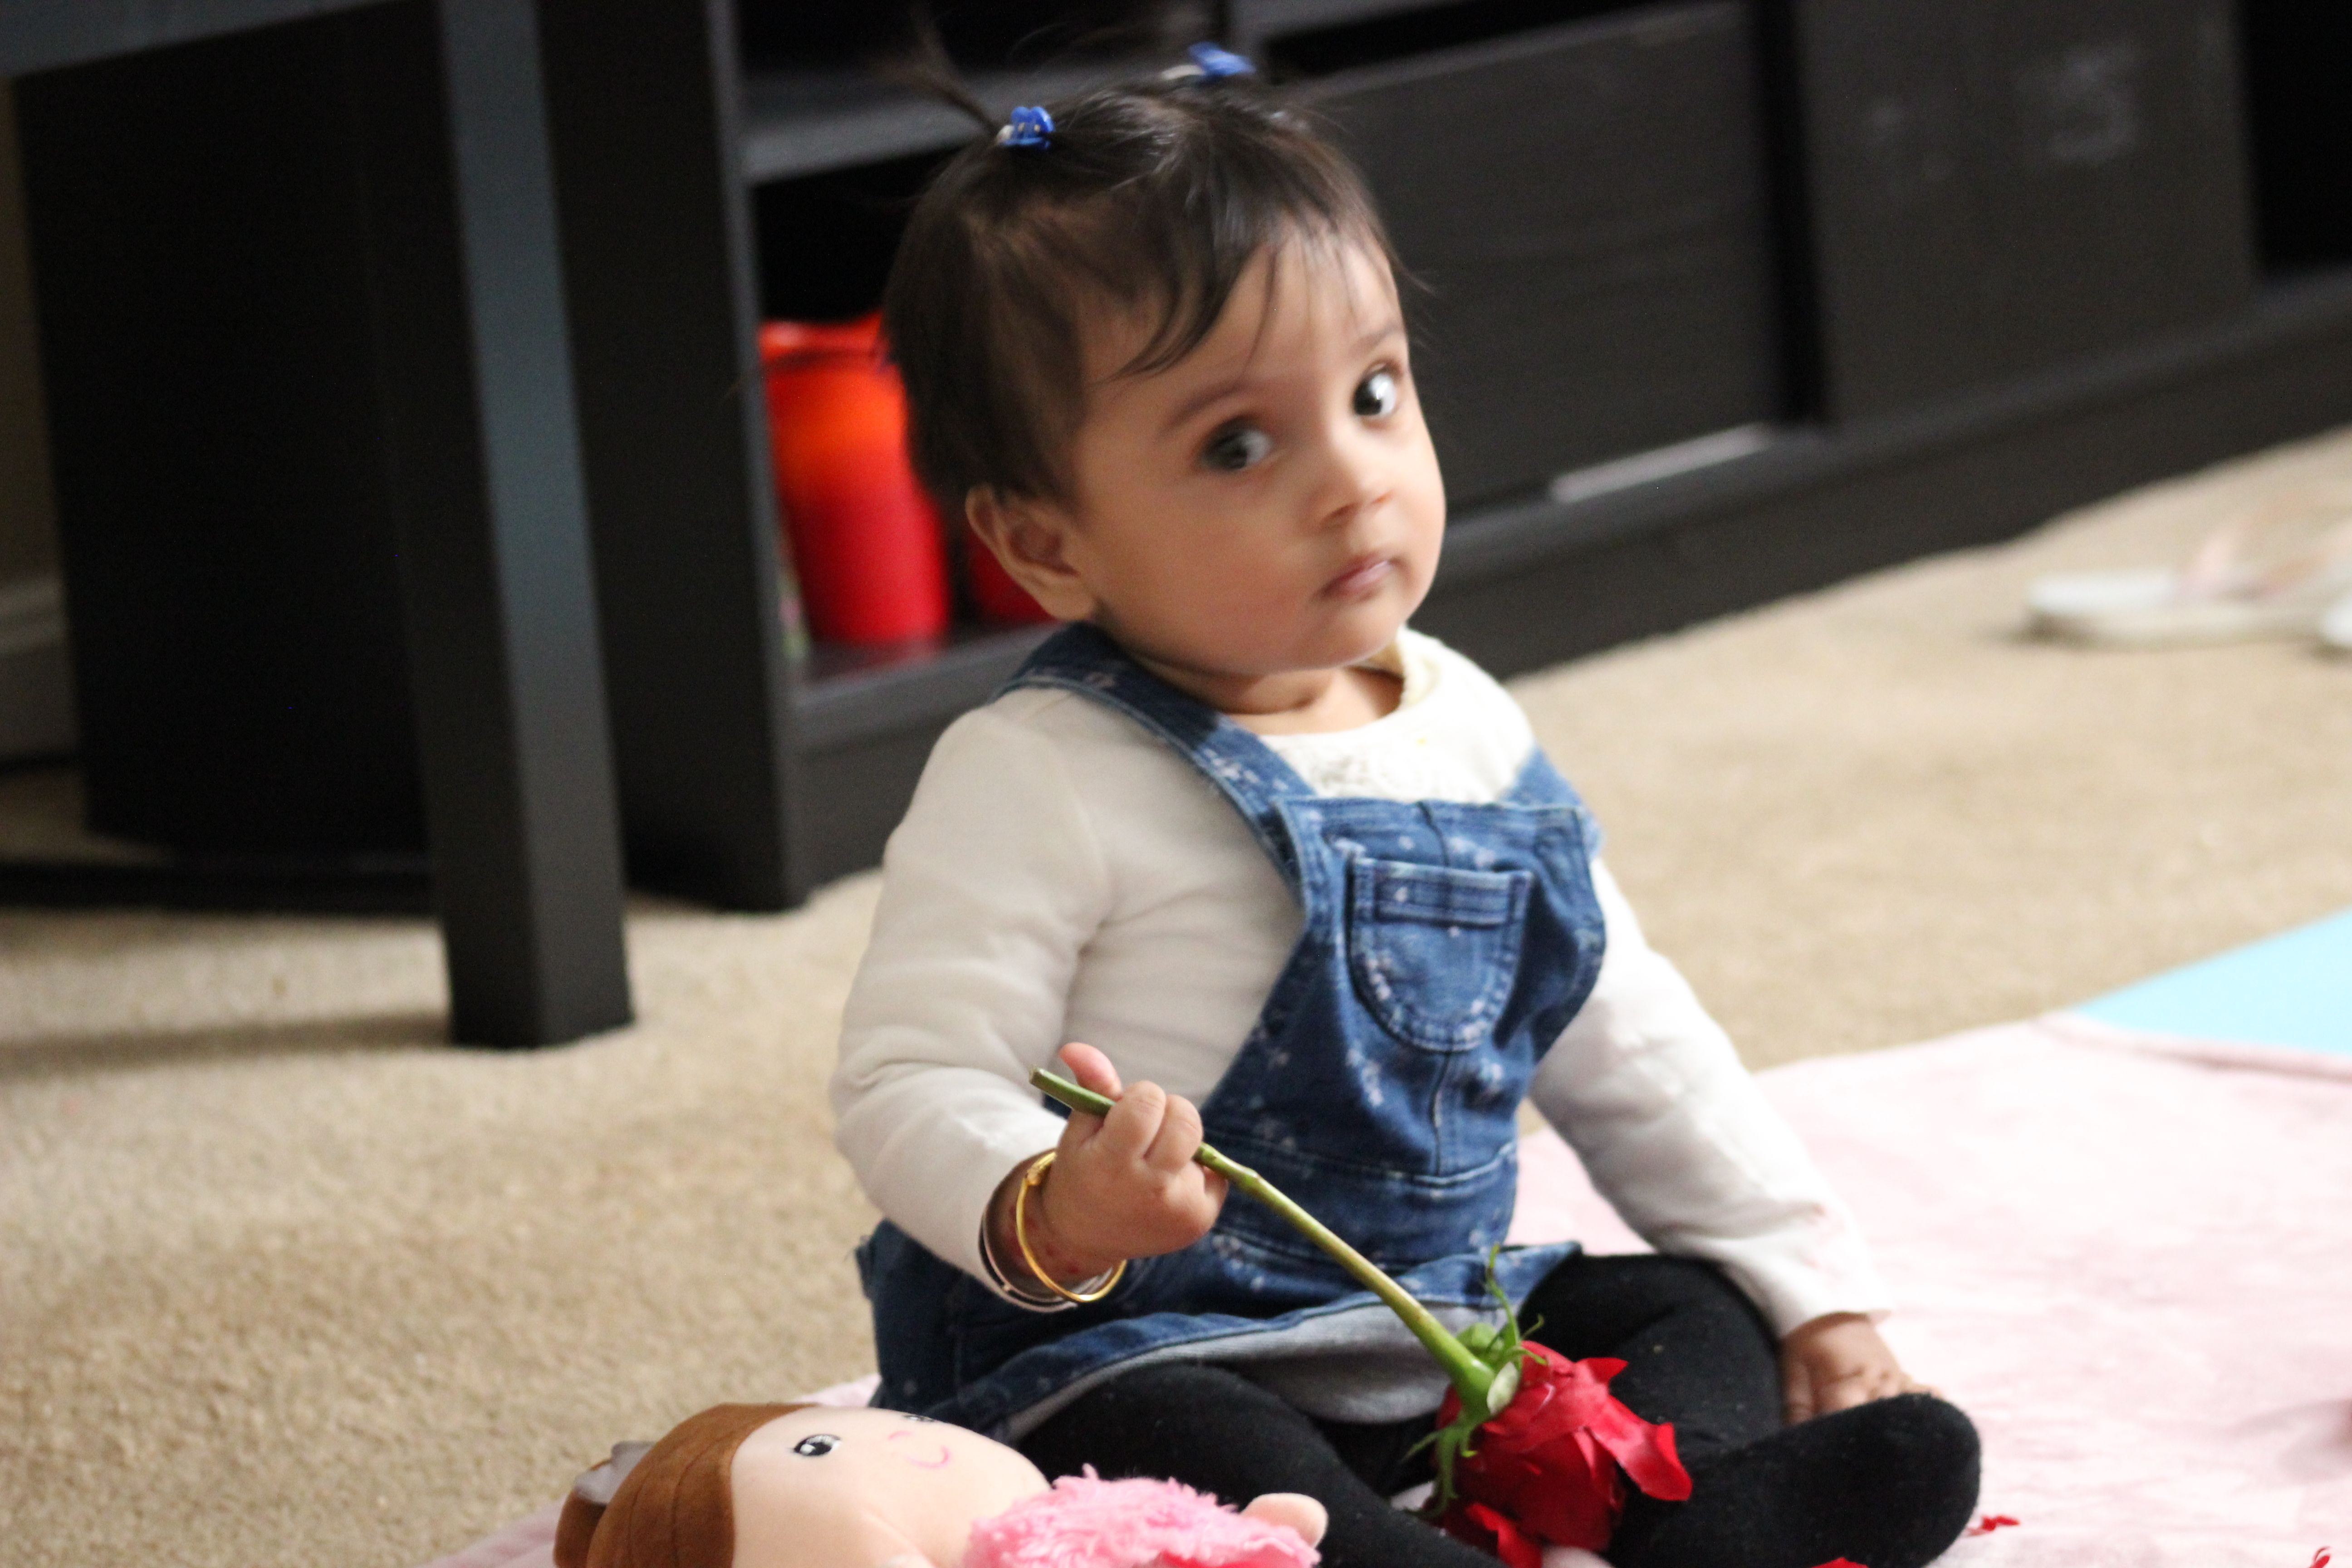 8 months old Baby Girl is little busy in giving out some ...